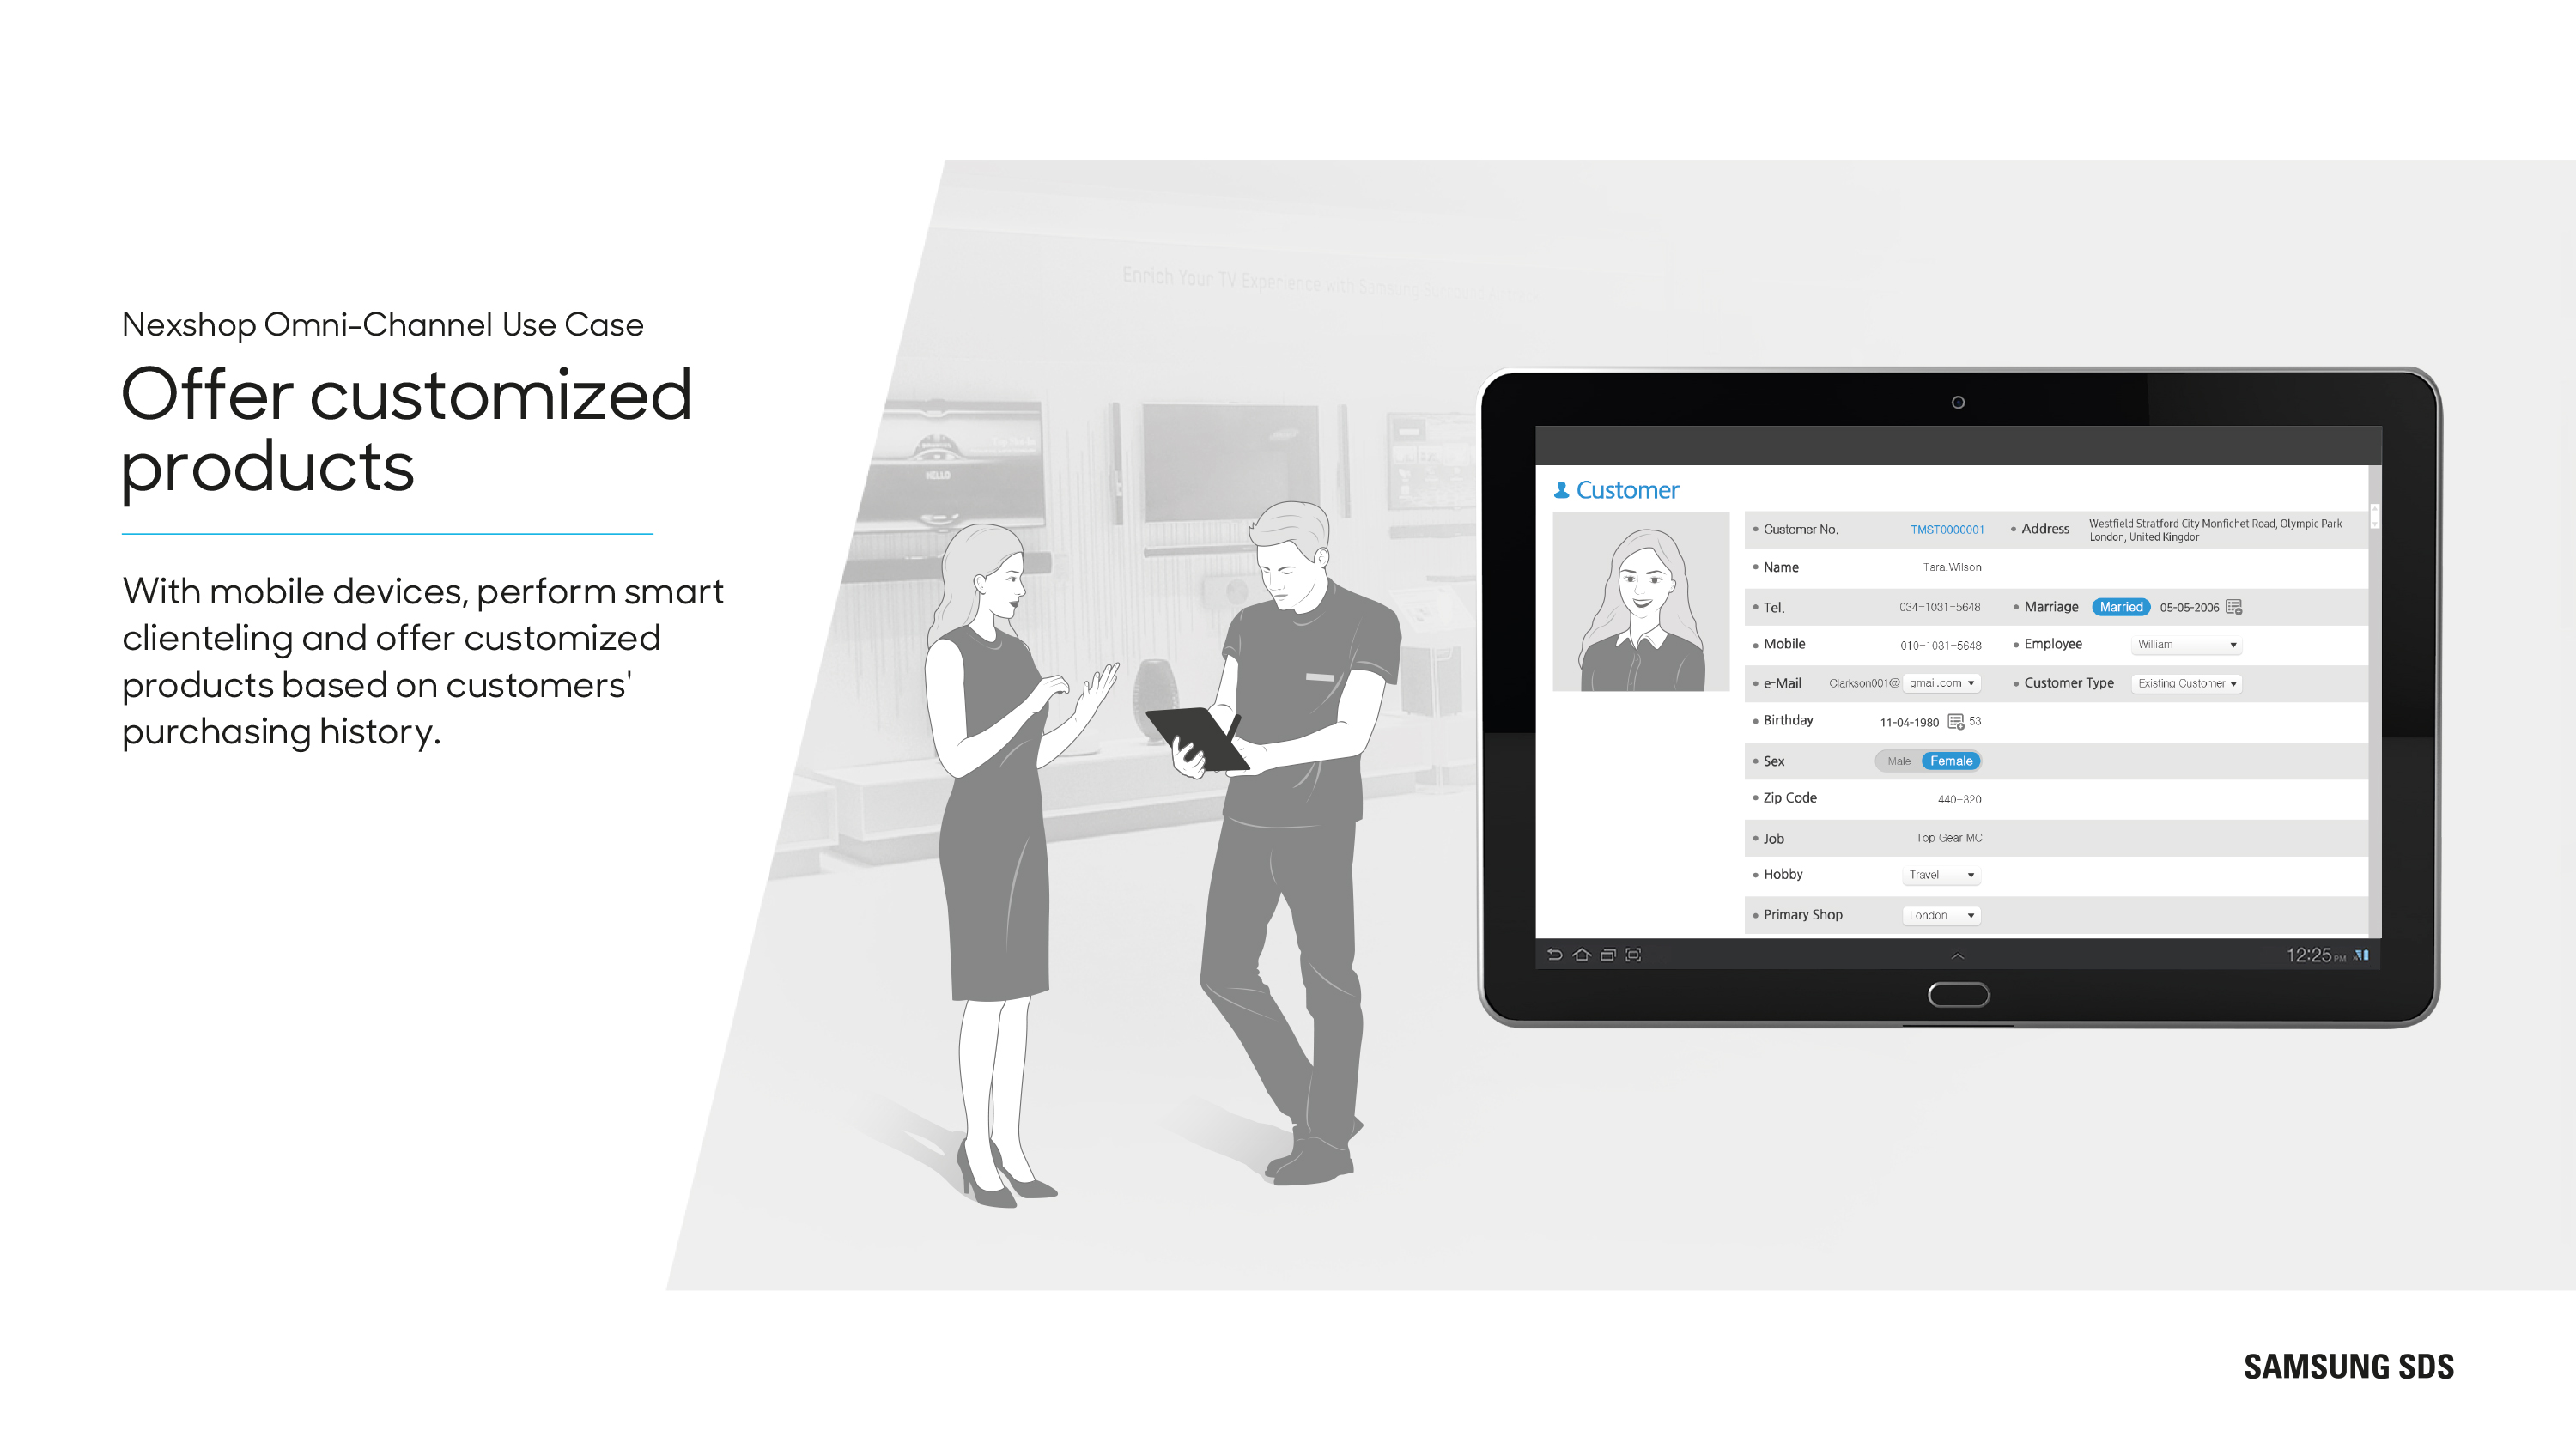 With mobile devices, perform smart clienteling and offer customized products based on customers' purchasing history.